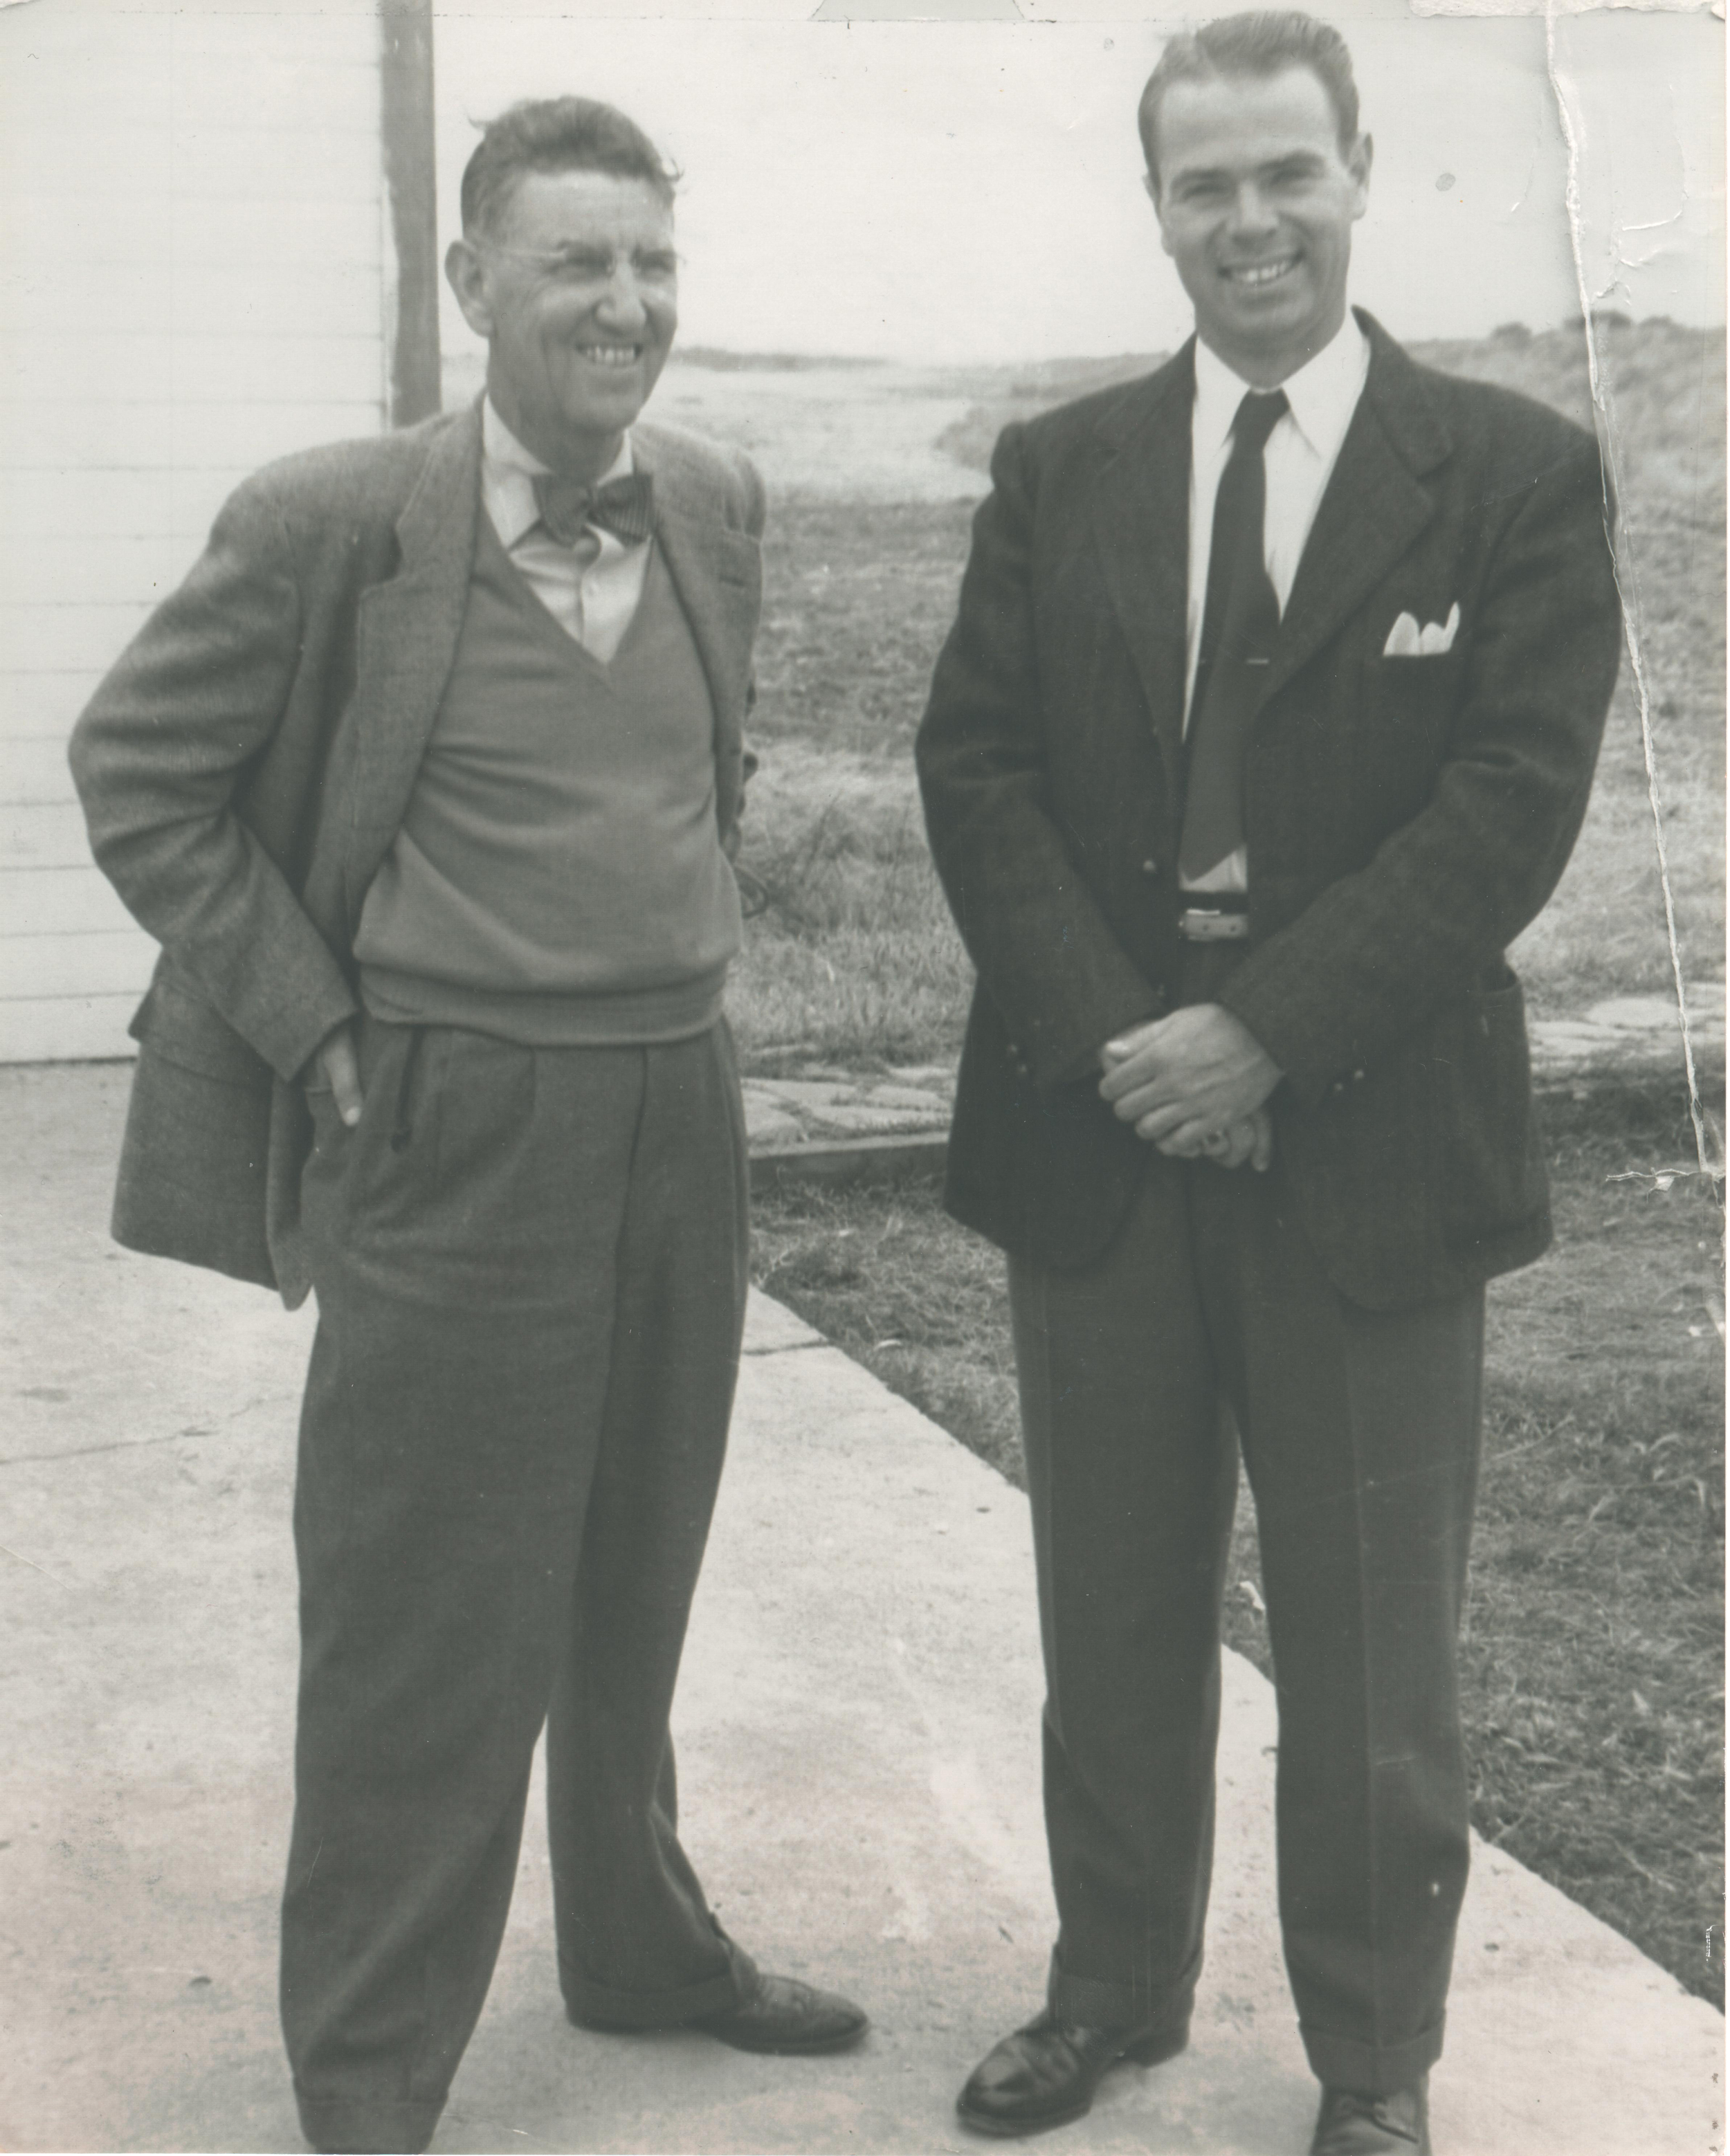 Robert Schaeffer on the right with his old coach, Ky Ebright of UC Berkley, on the left.